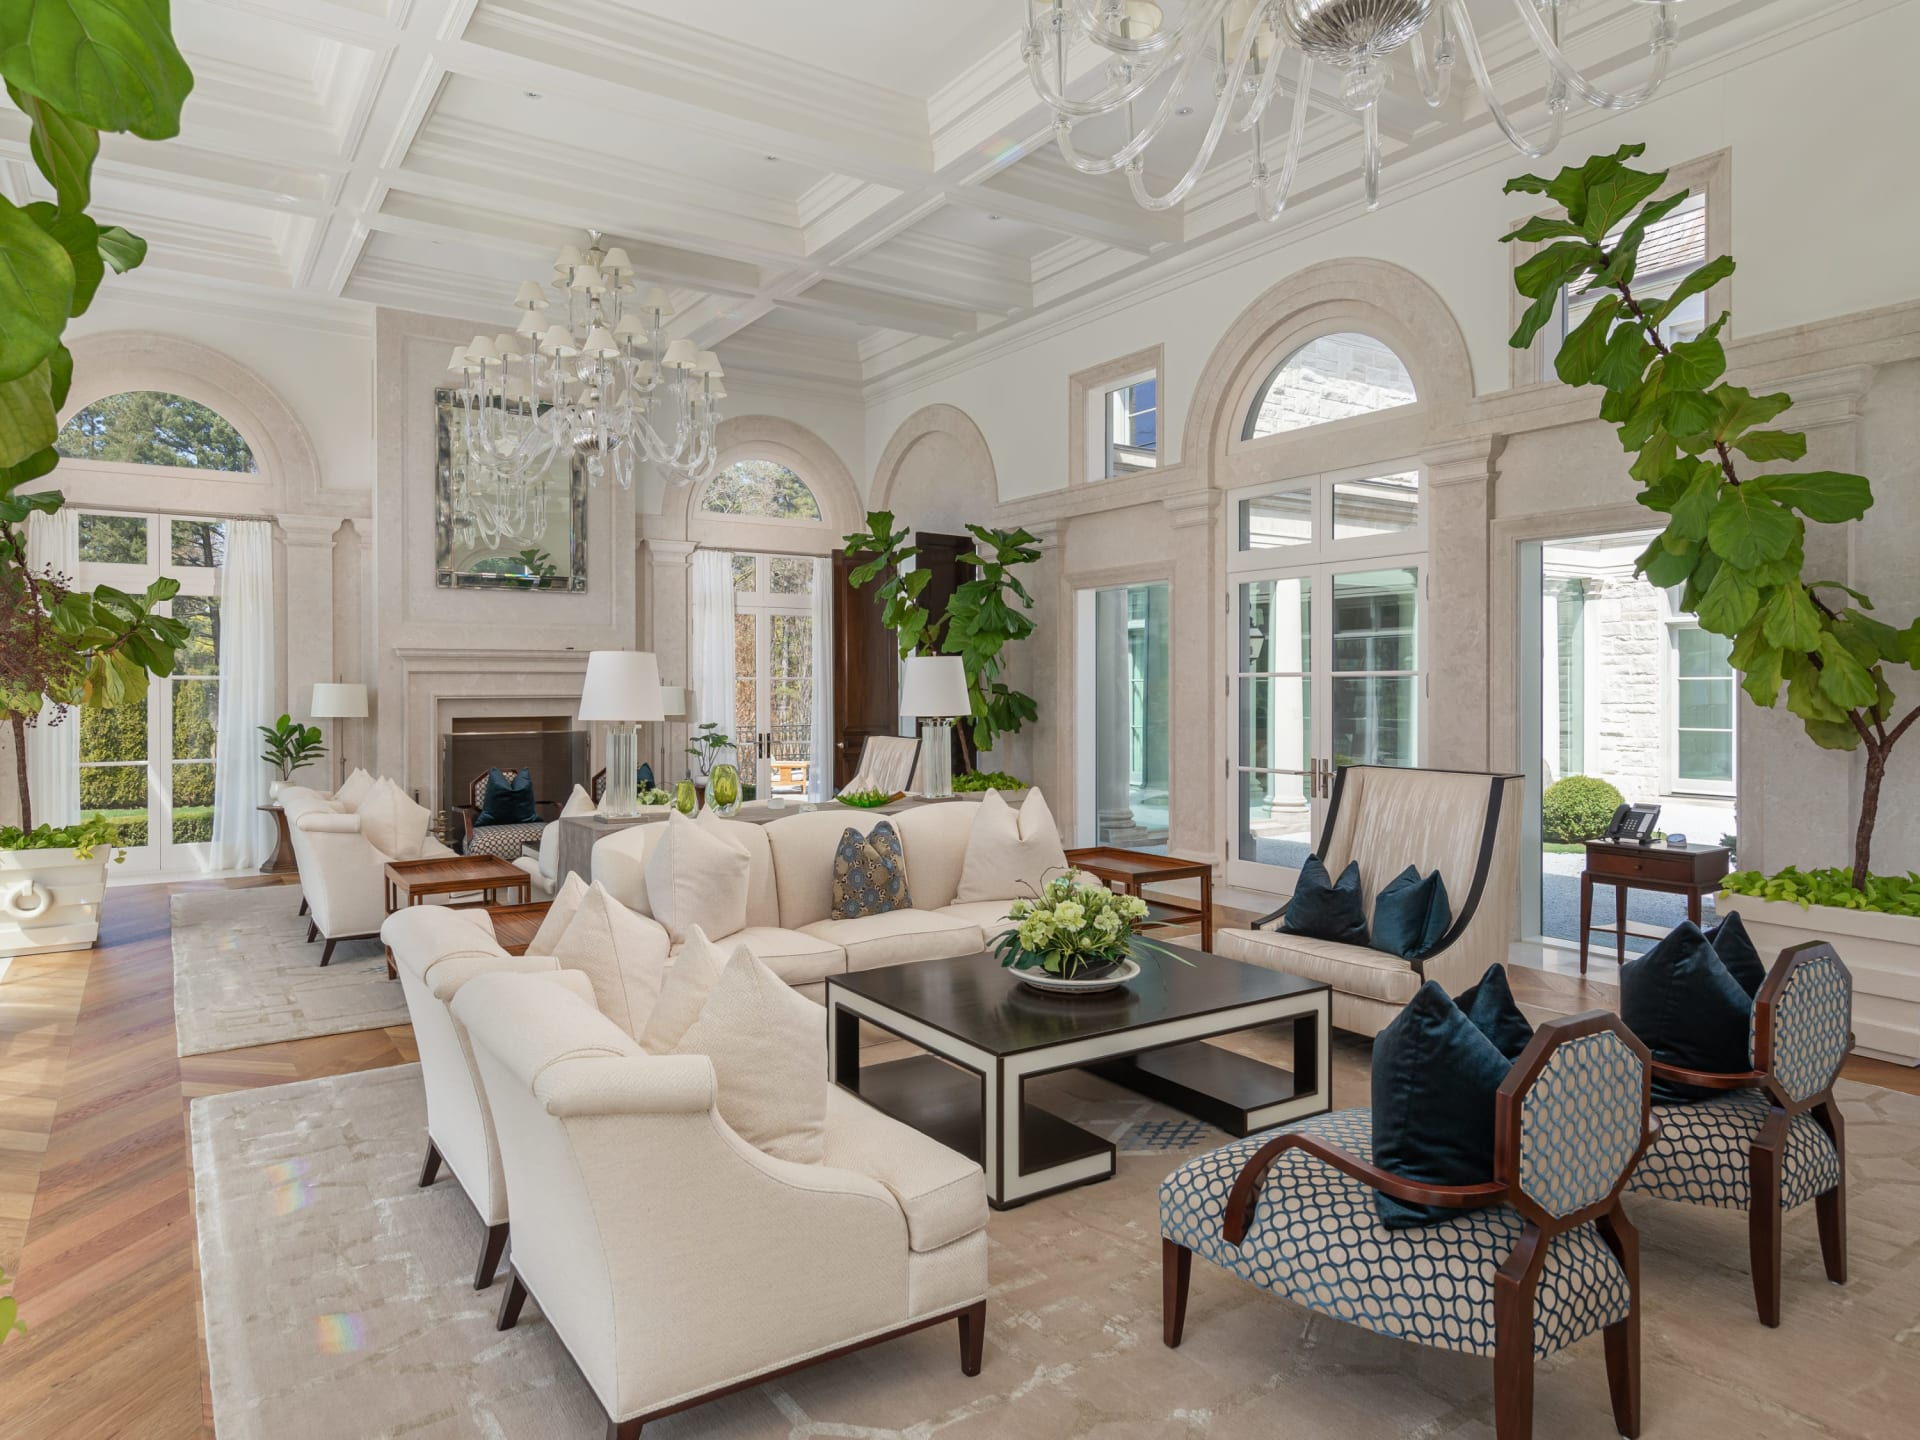 SOLD: Gated French Provincial Bridle Path Mansion